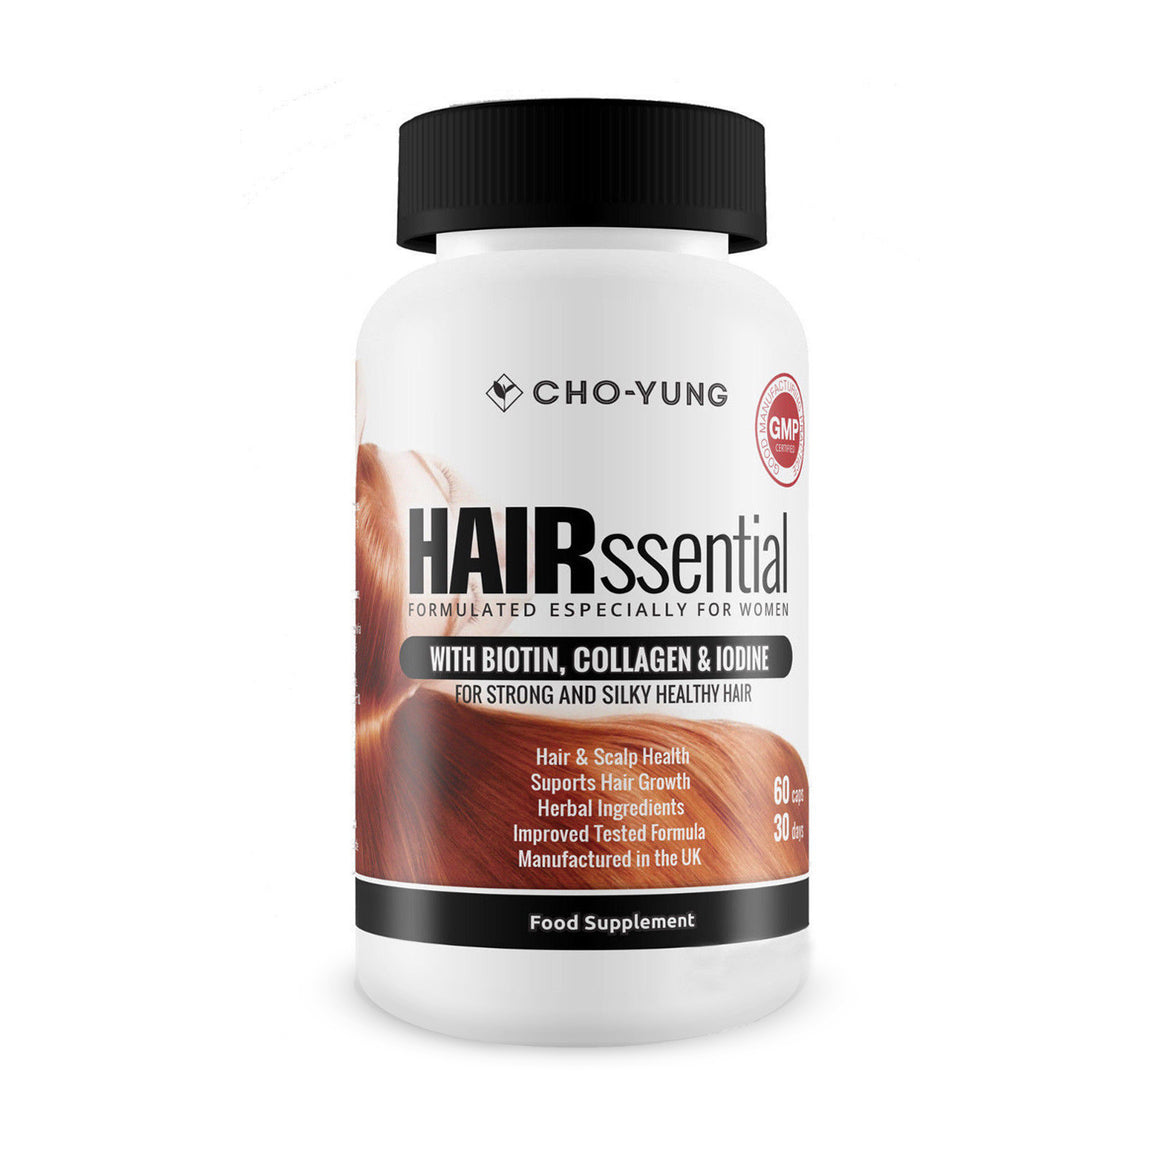 HAIRssential - For Women - For Strong and Silky Hair